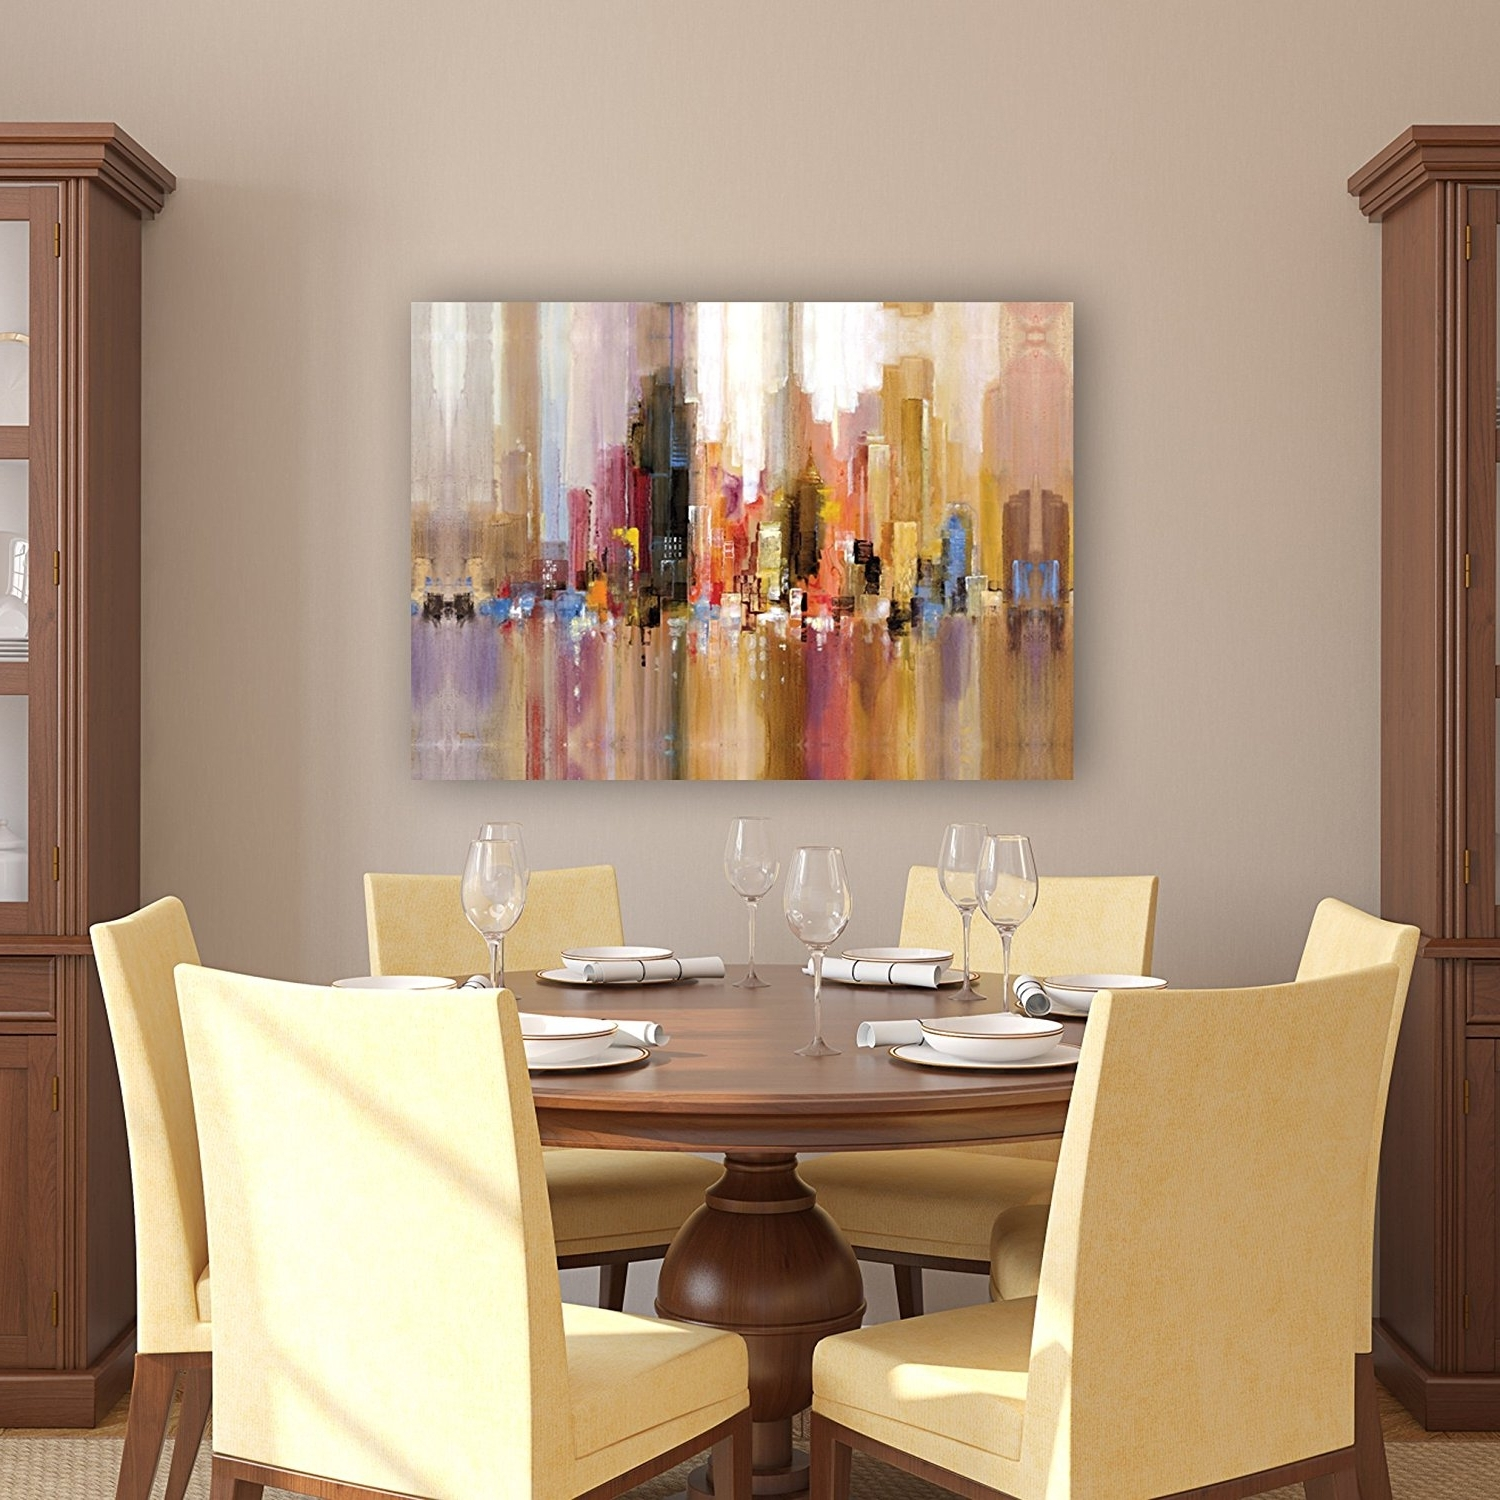 Modern Wall Art For Dining Room: 15 Inspirations Of Modern Wall Art For Dining Room